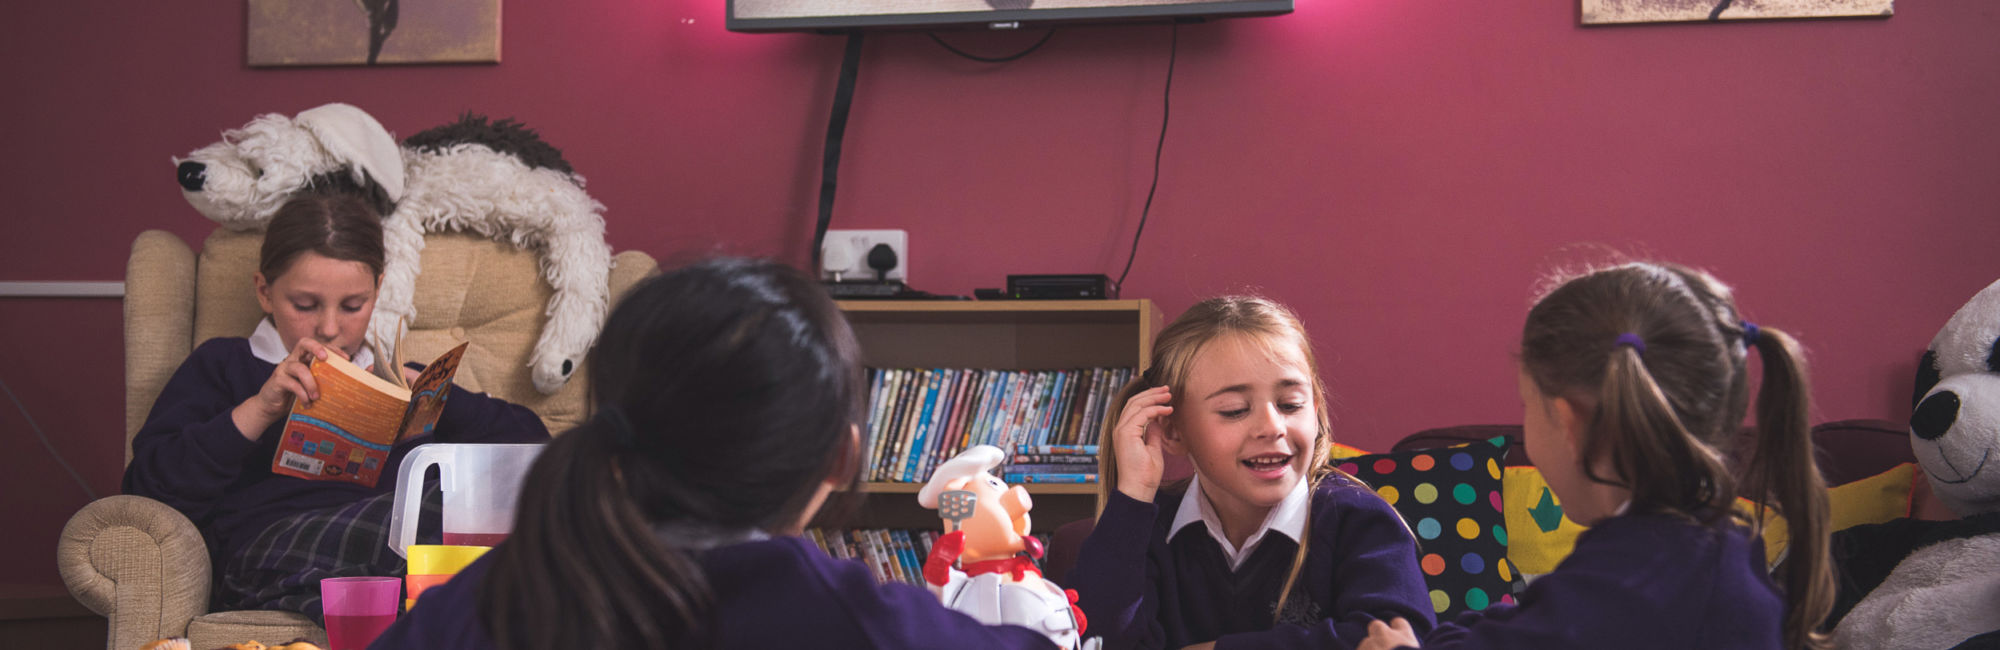 wycliffe girls reading and playing in their common lounge